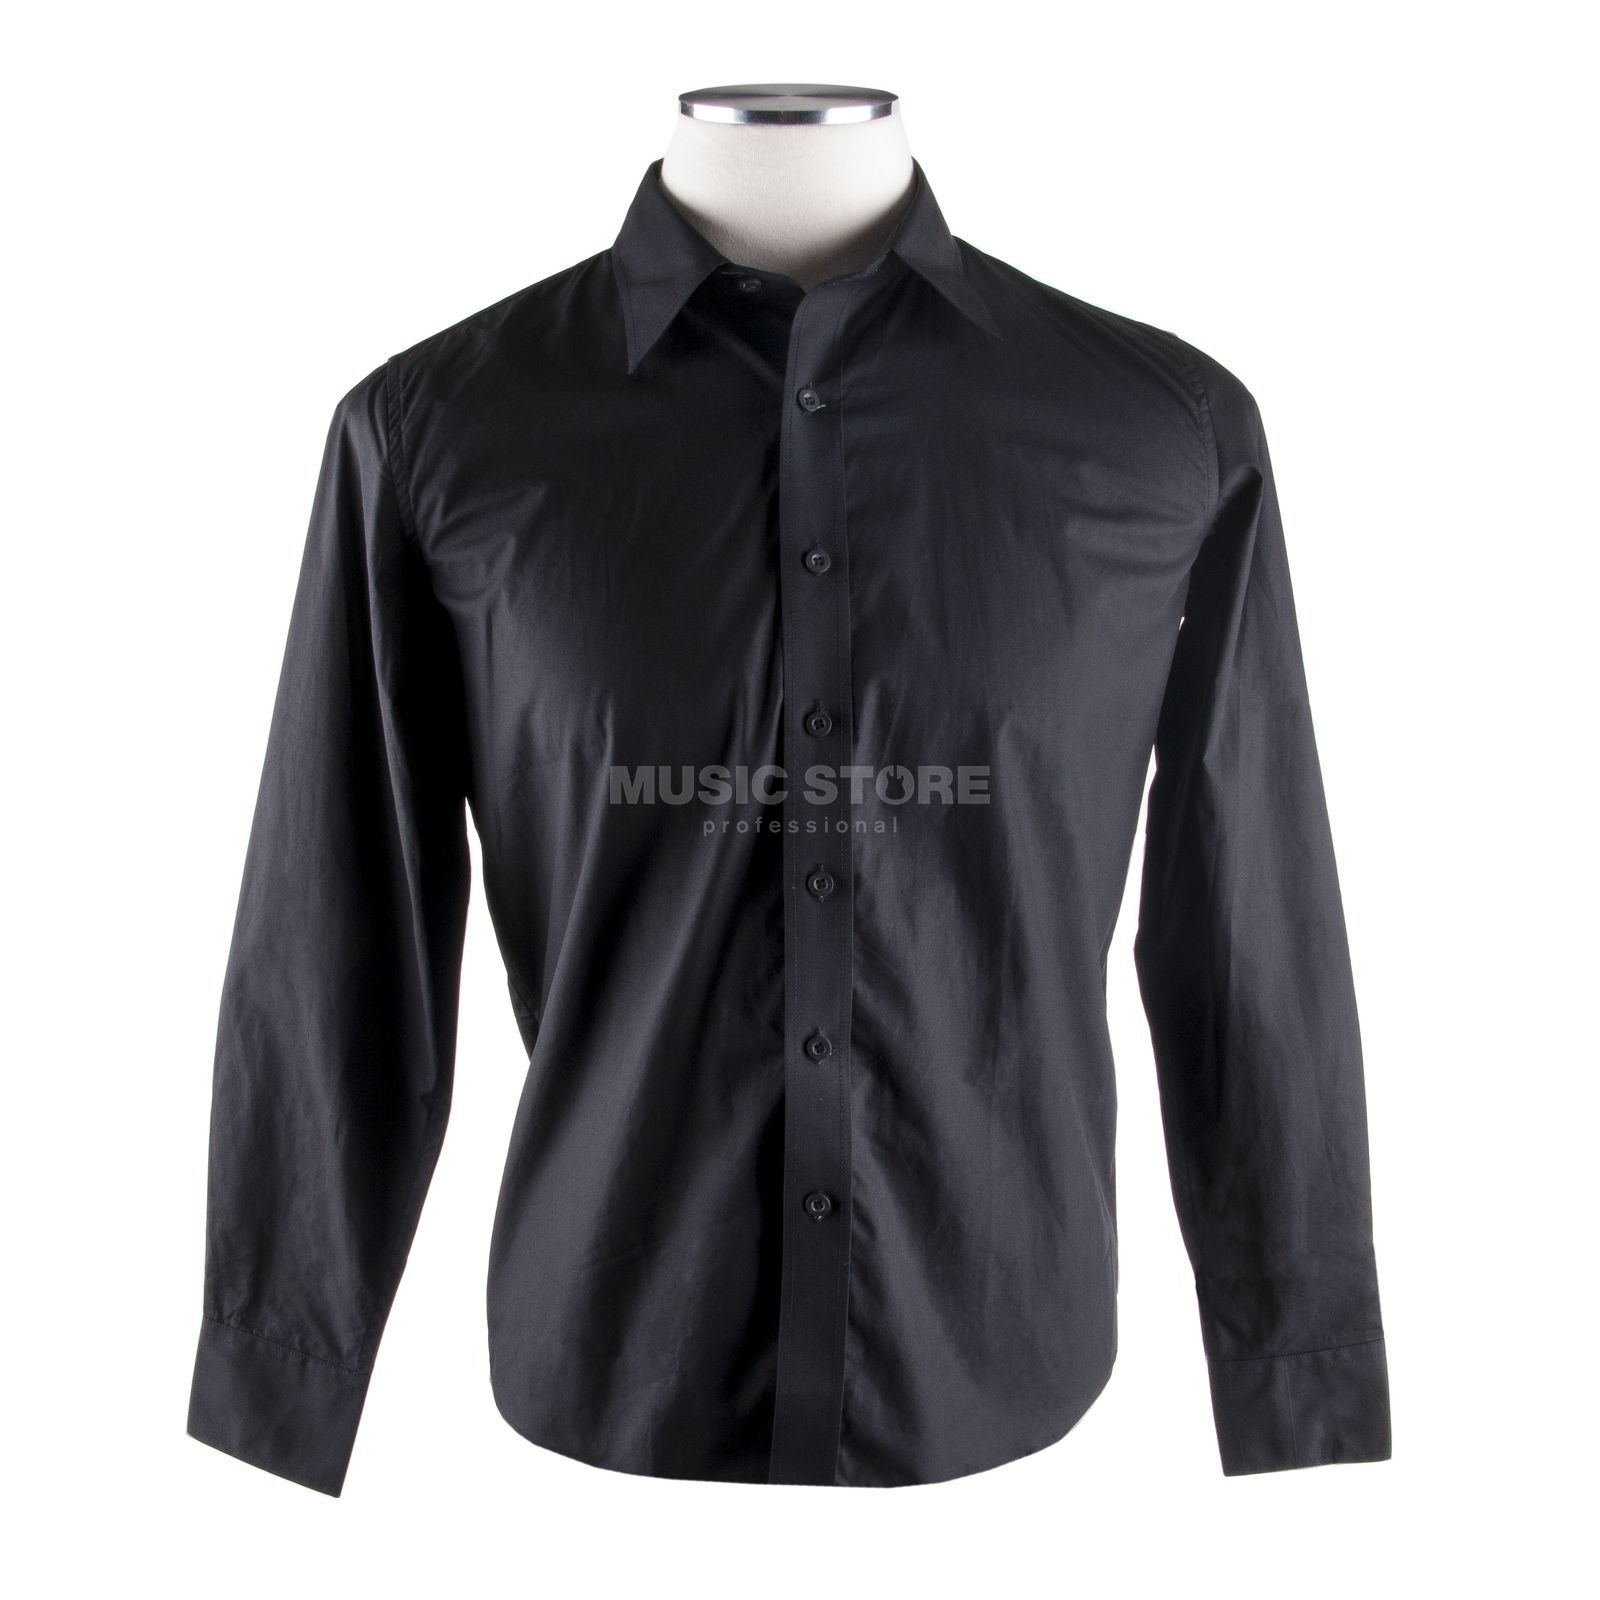 Fender Long Sleeve Shirt M Black Produktbild